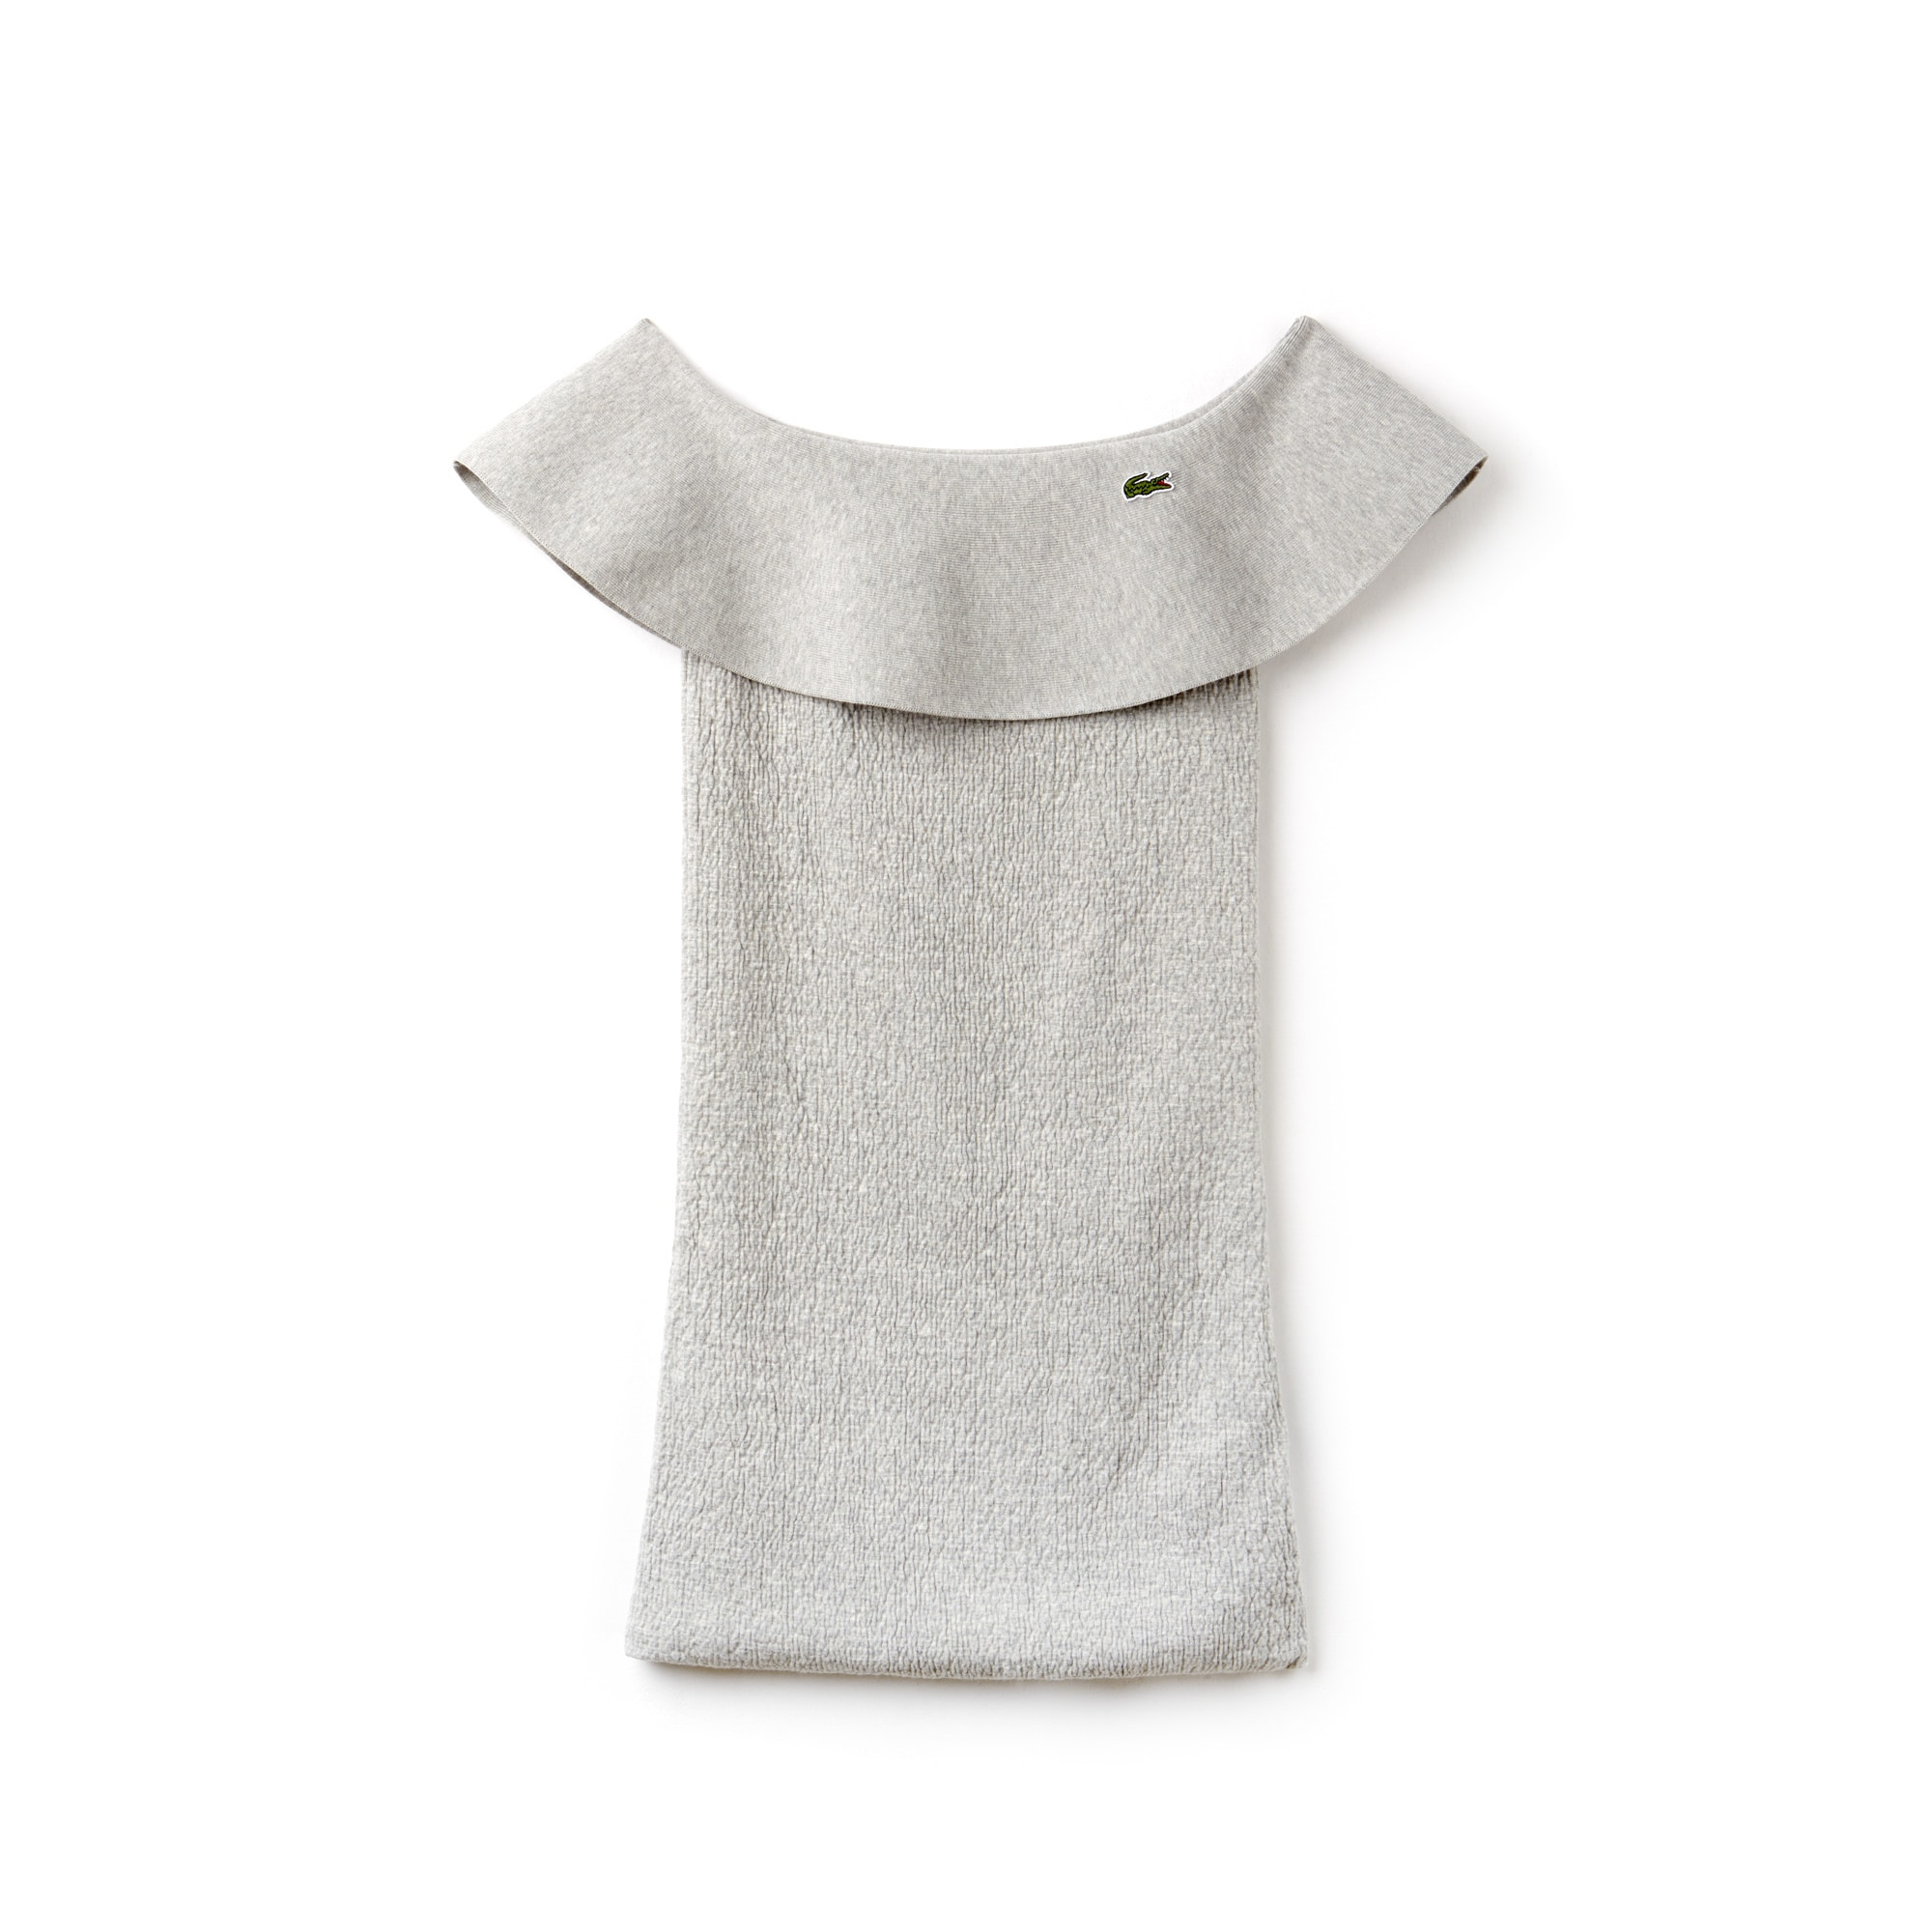 Women's Fashion Show Cotton Knit Flounced Bustier Dress